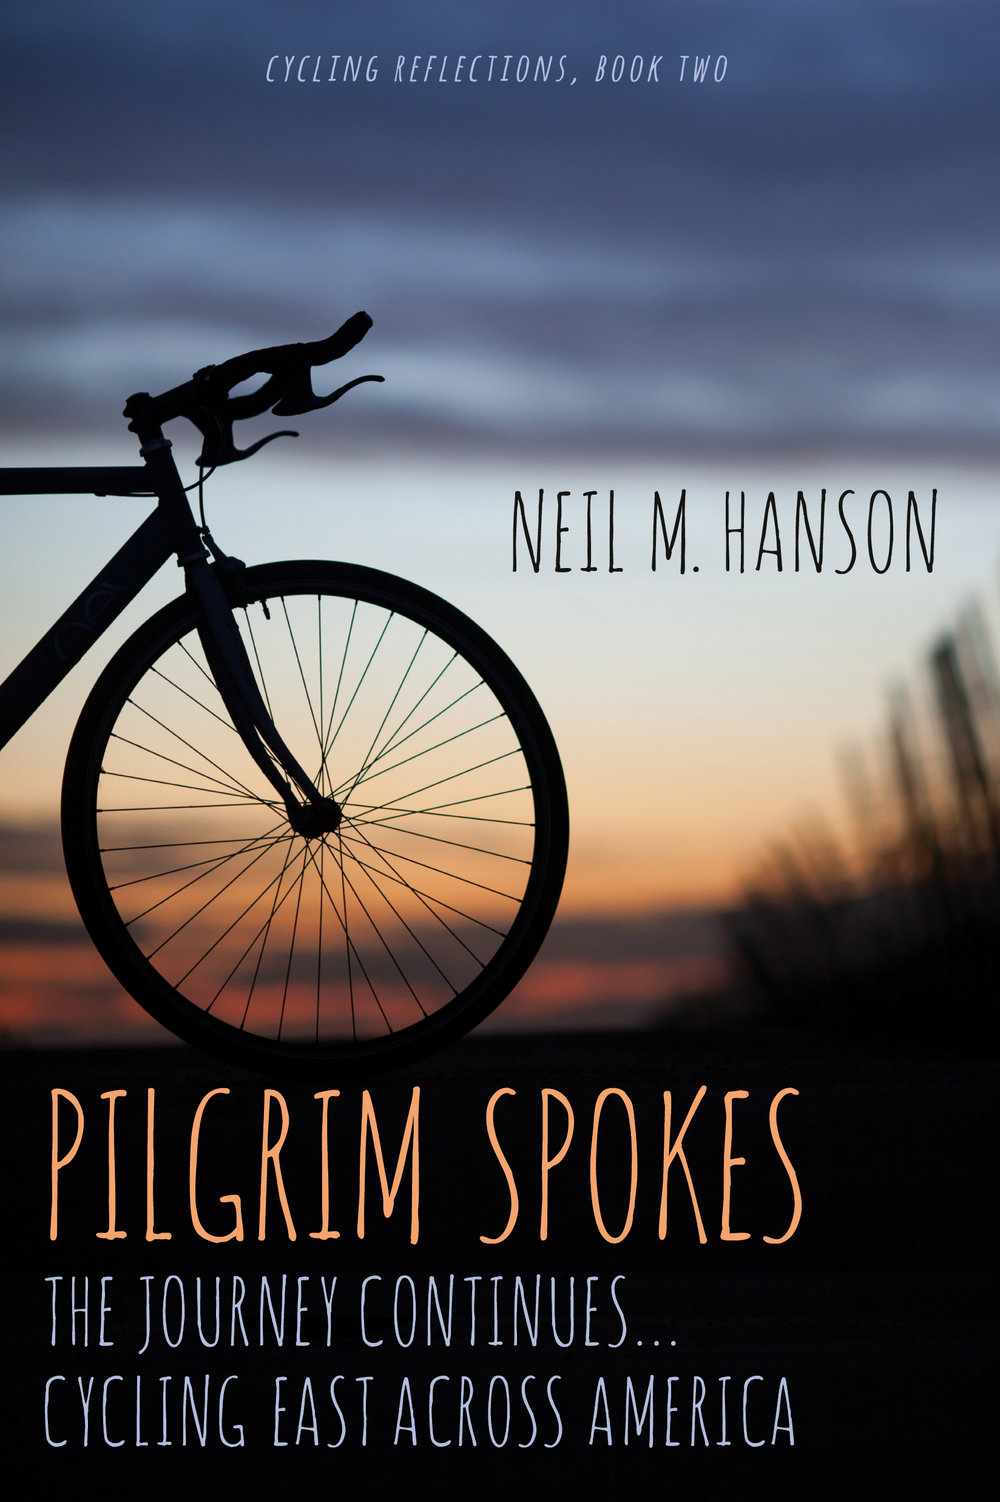 September, 2016: Pilgrim Spokes